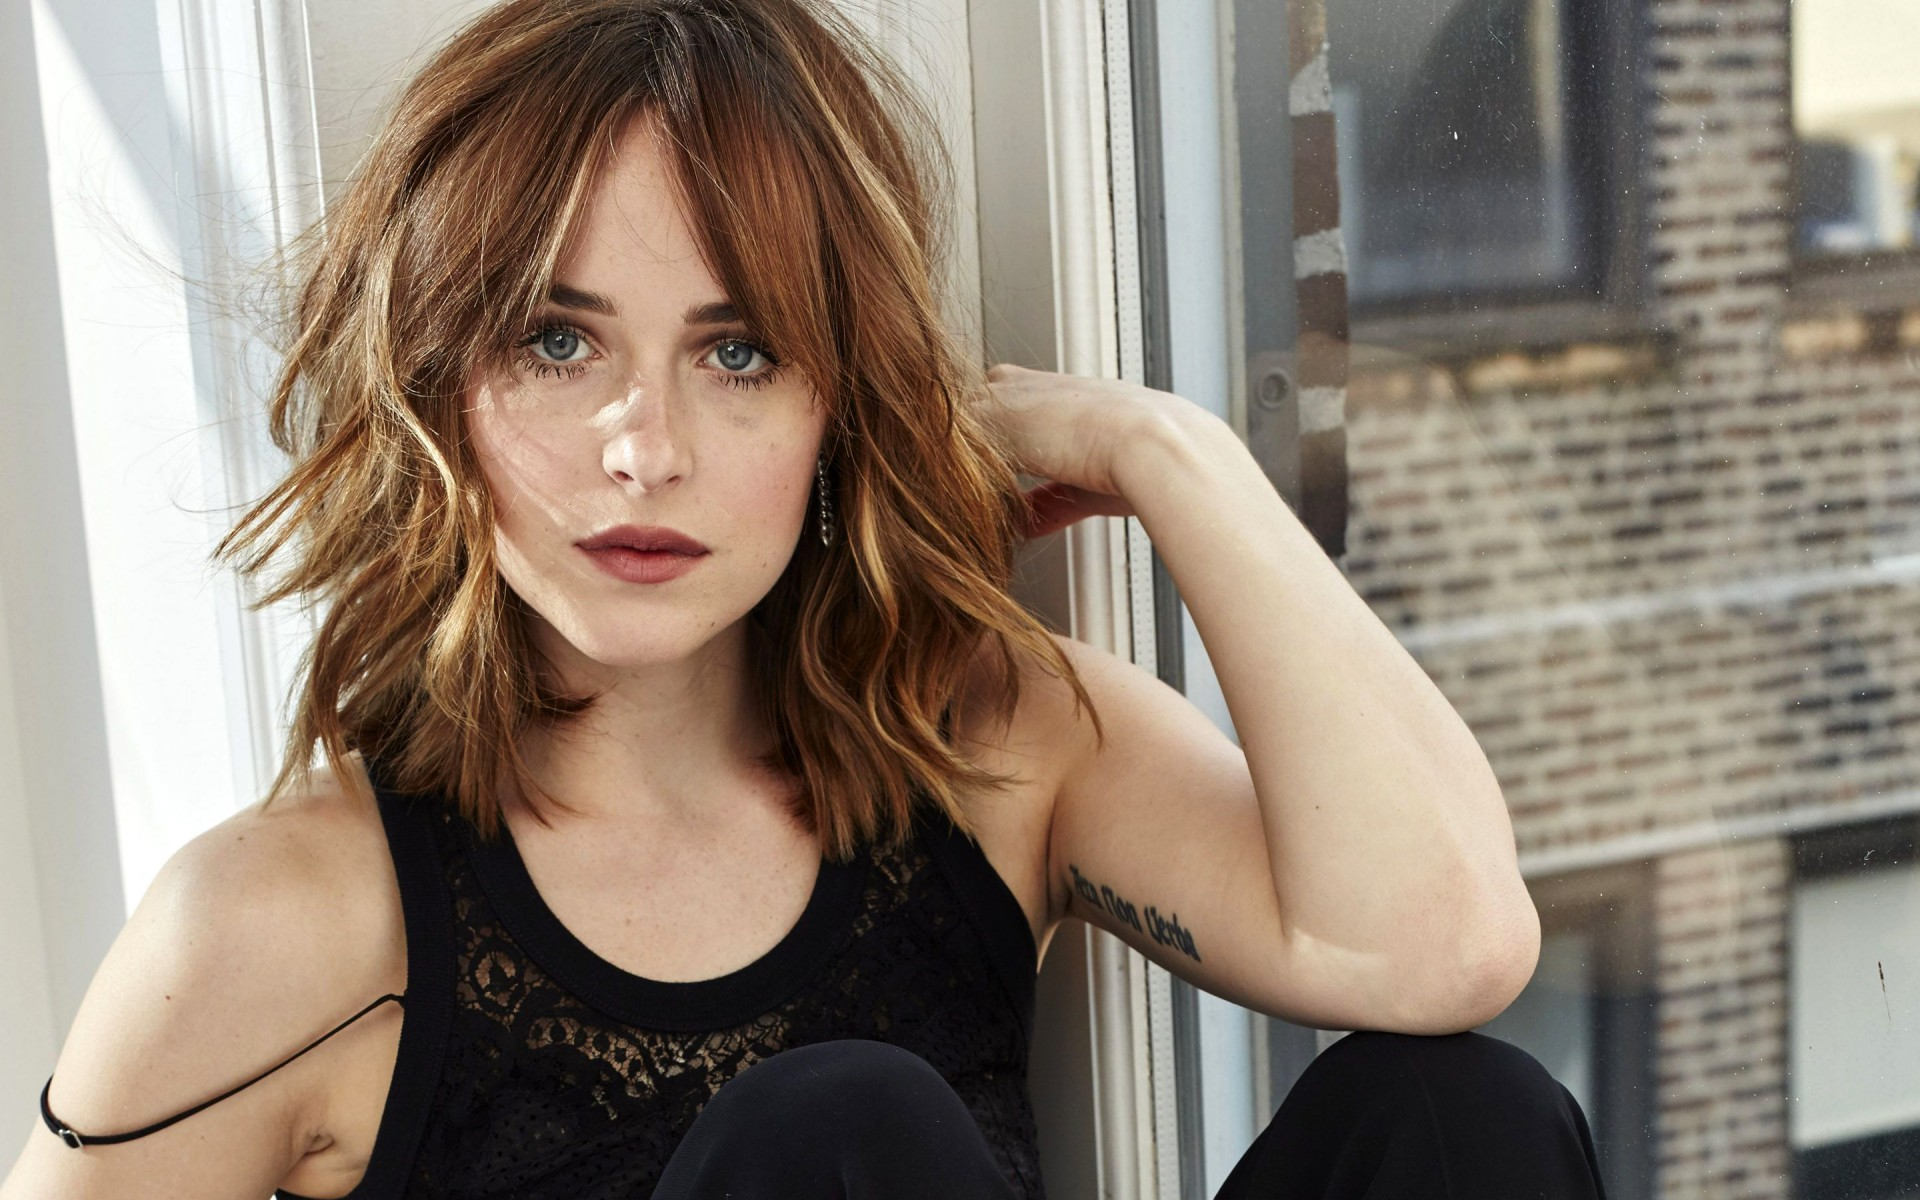 Latest Sports Cars 2014 Wallpaper Dakota Johnson 2017 Wallpapers Hd Wallpapers Id 19851